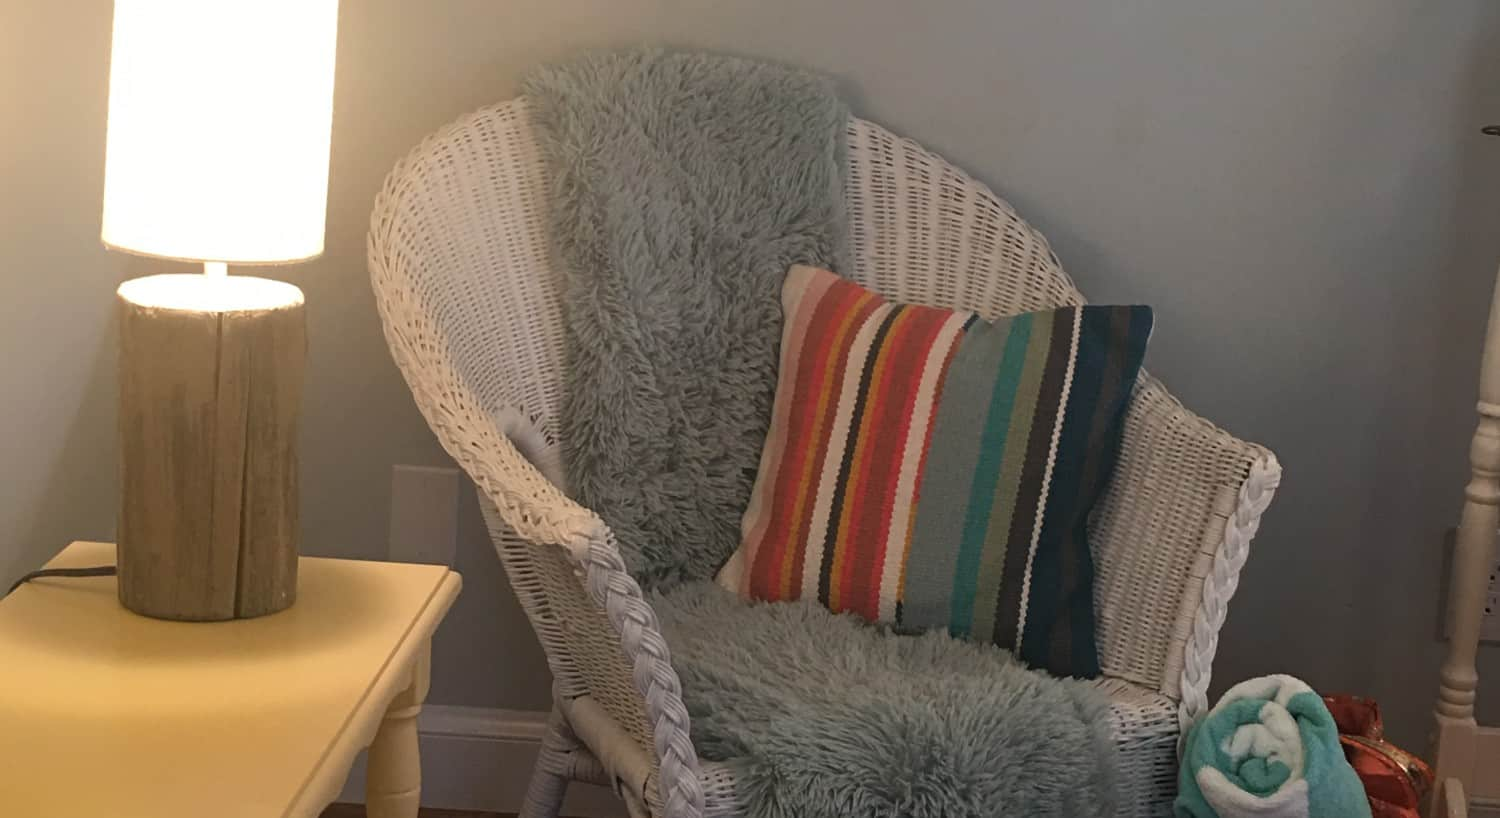 A white wicker arm chair with a cozy throw and pillow sits next to a table with a lamp.